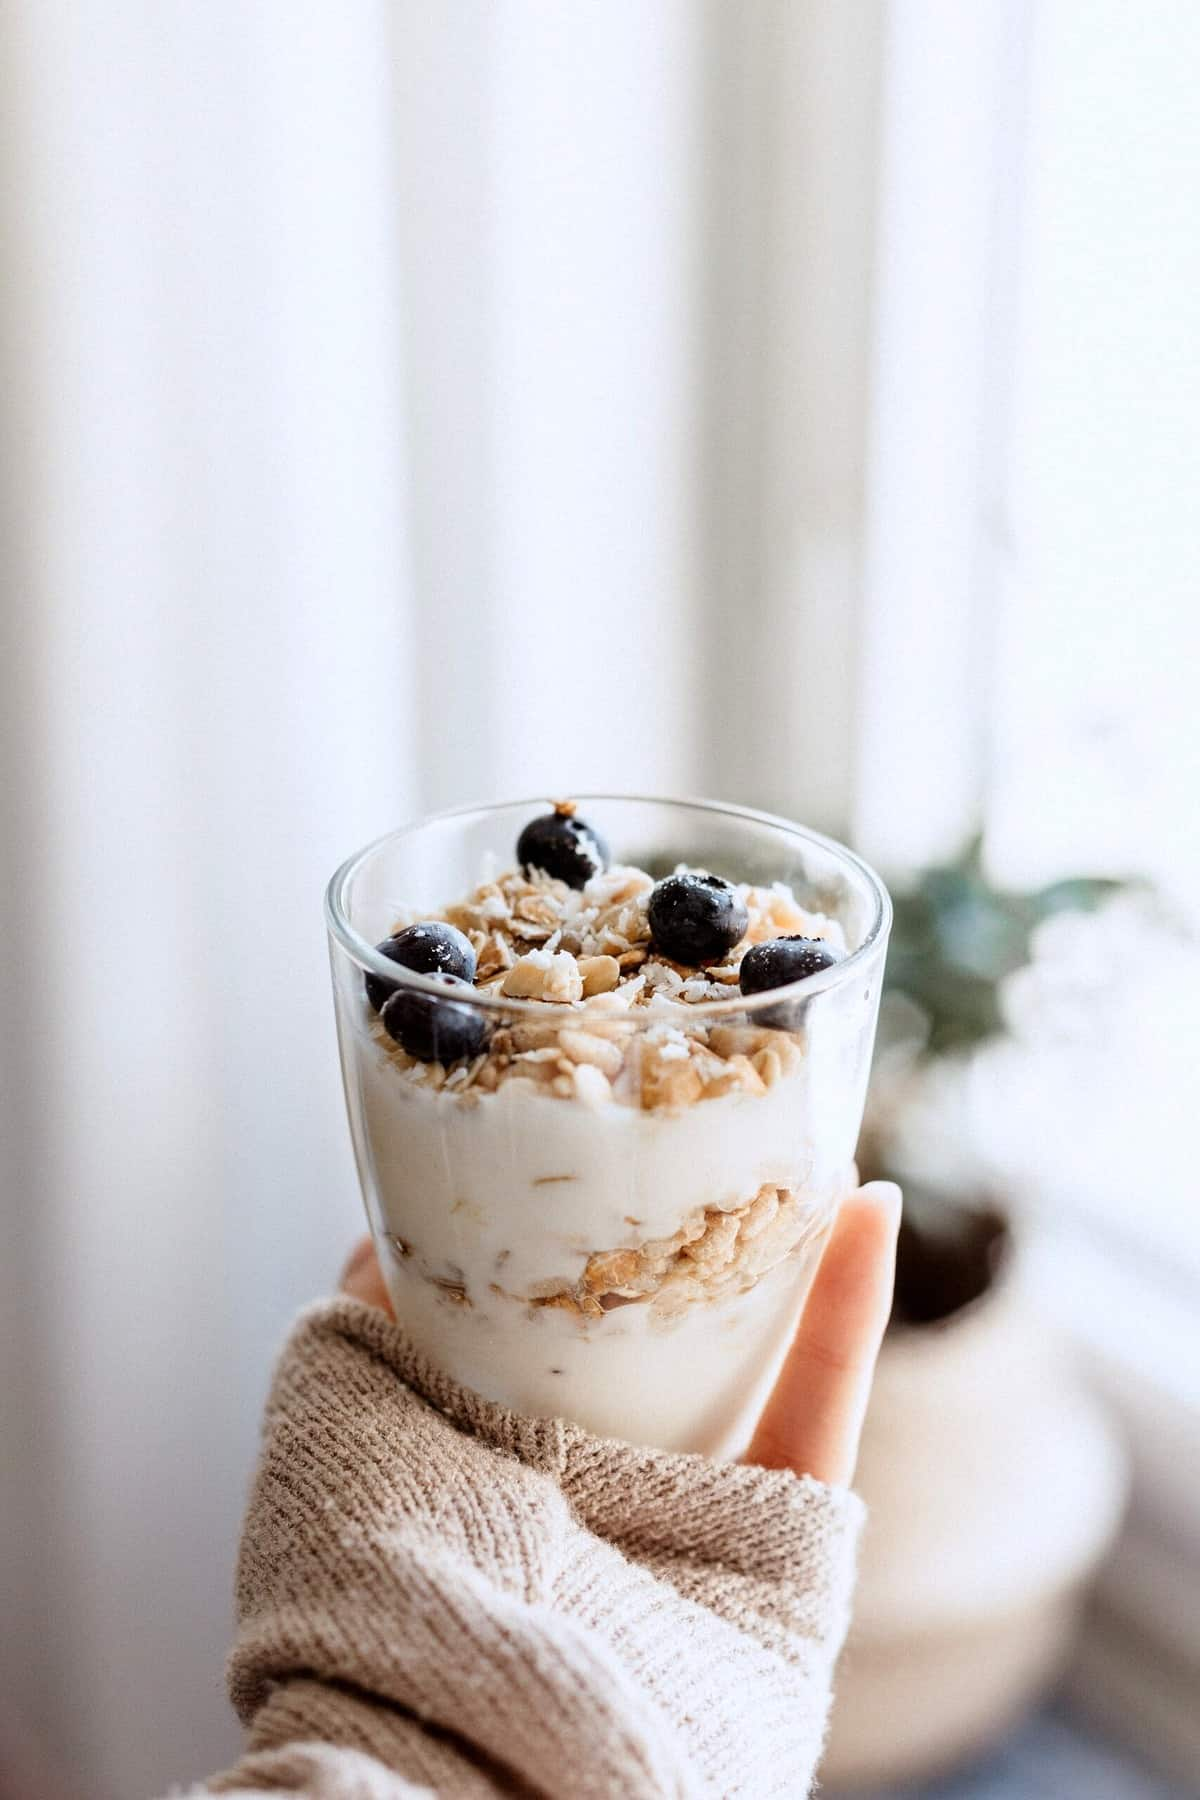 A hand holding up a breakfast parfait with blueberries and granola.